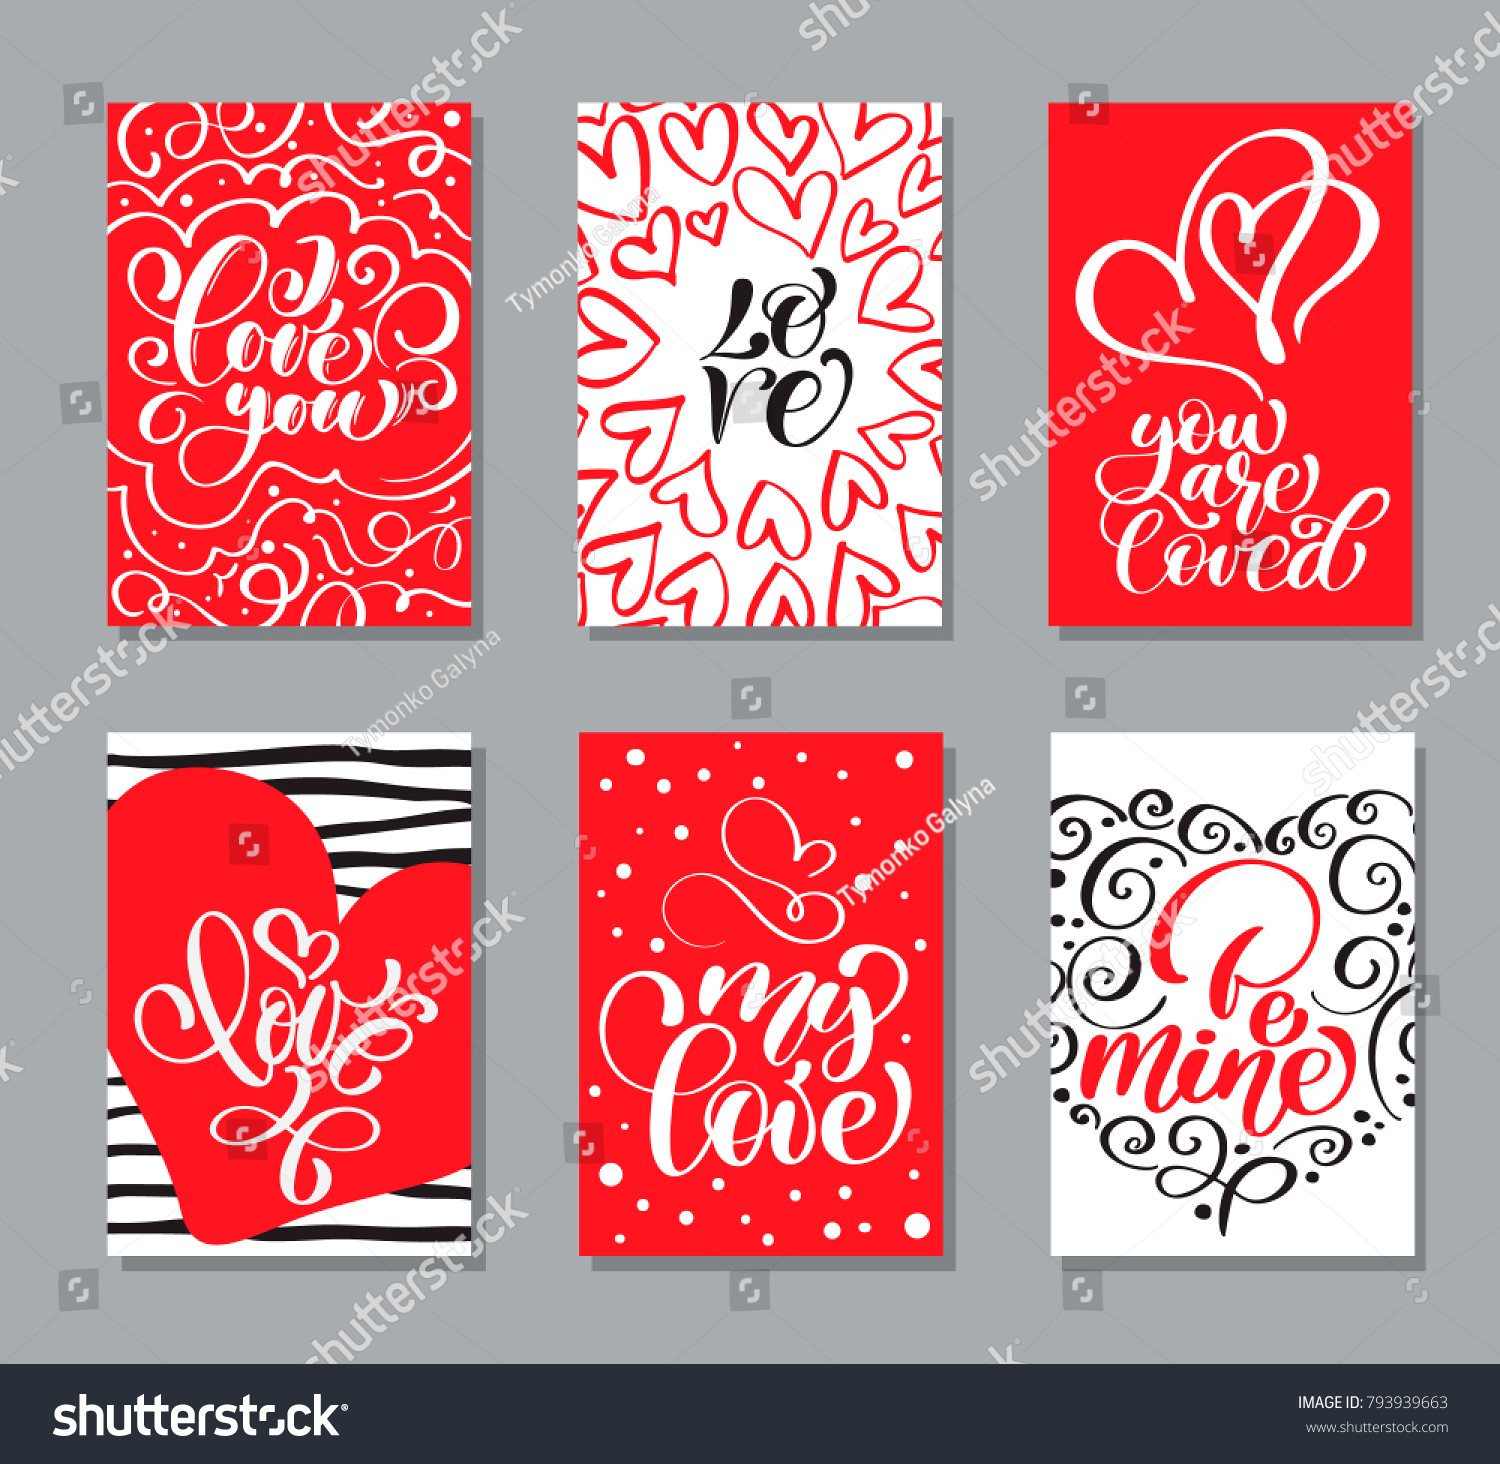 Vector Valentines Day Cards Templates Hand Drawn February 14 Gift